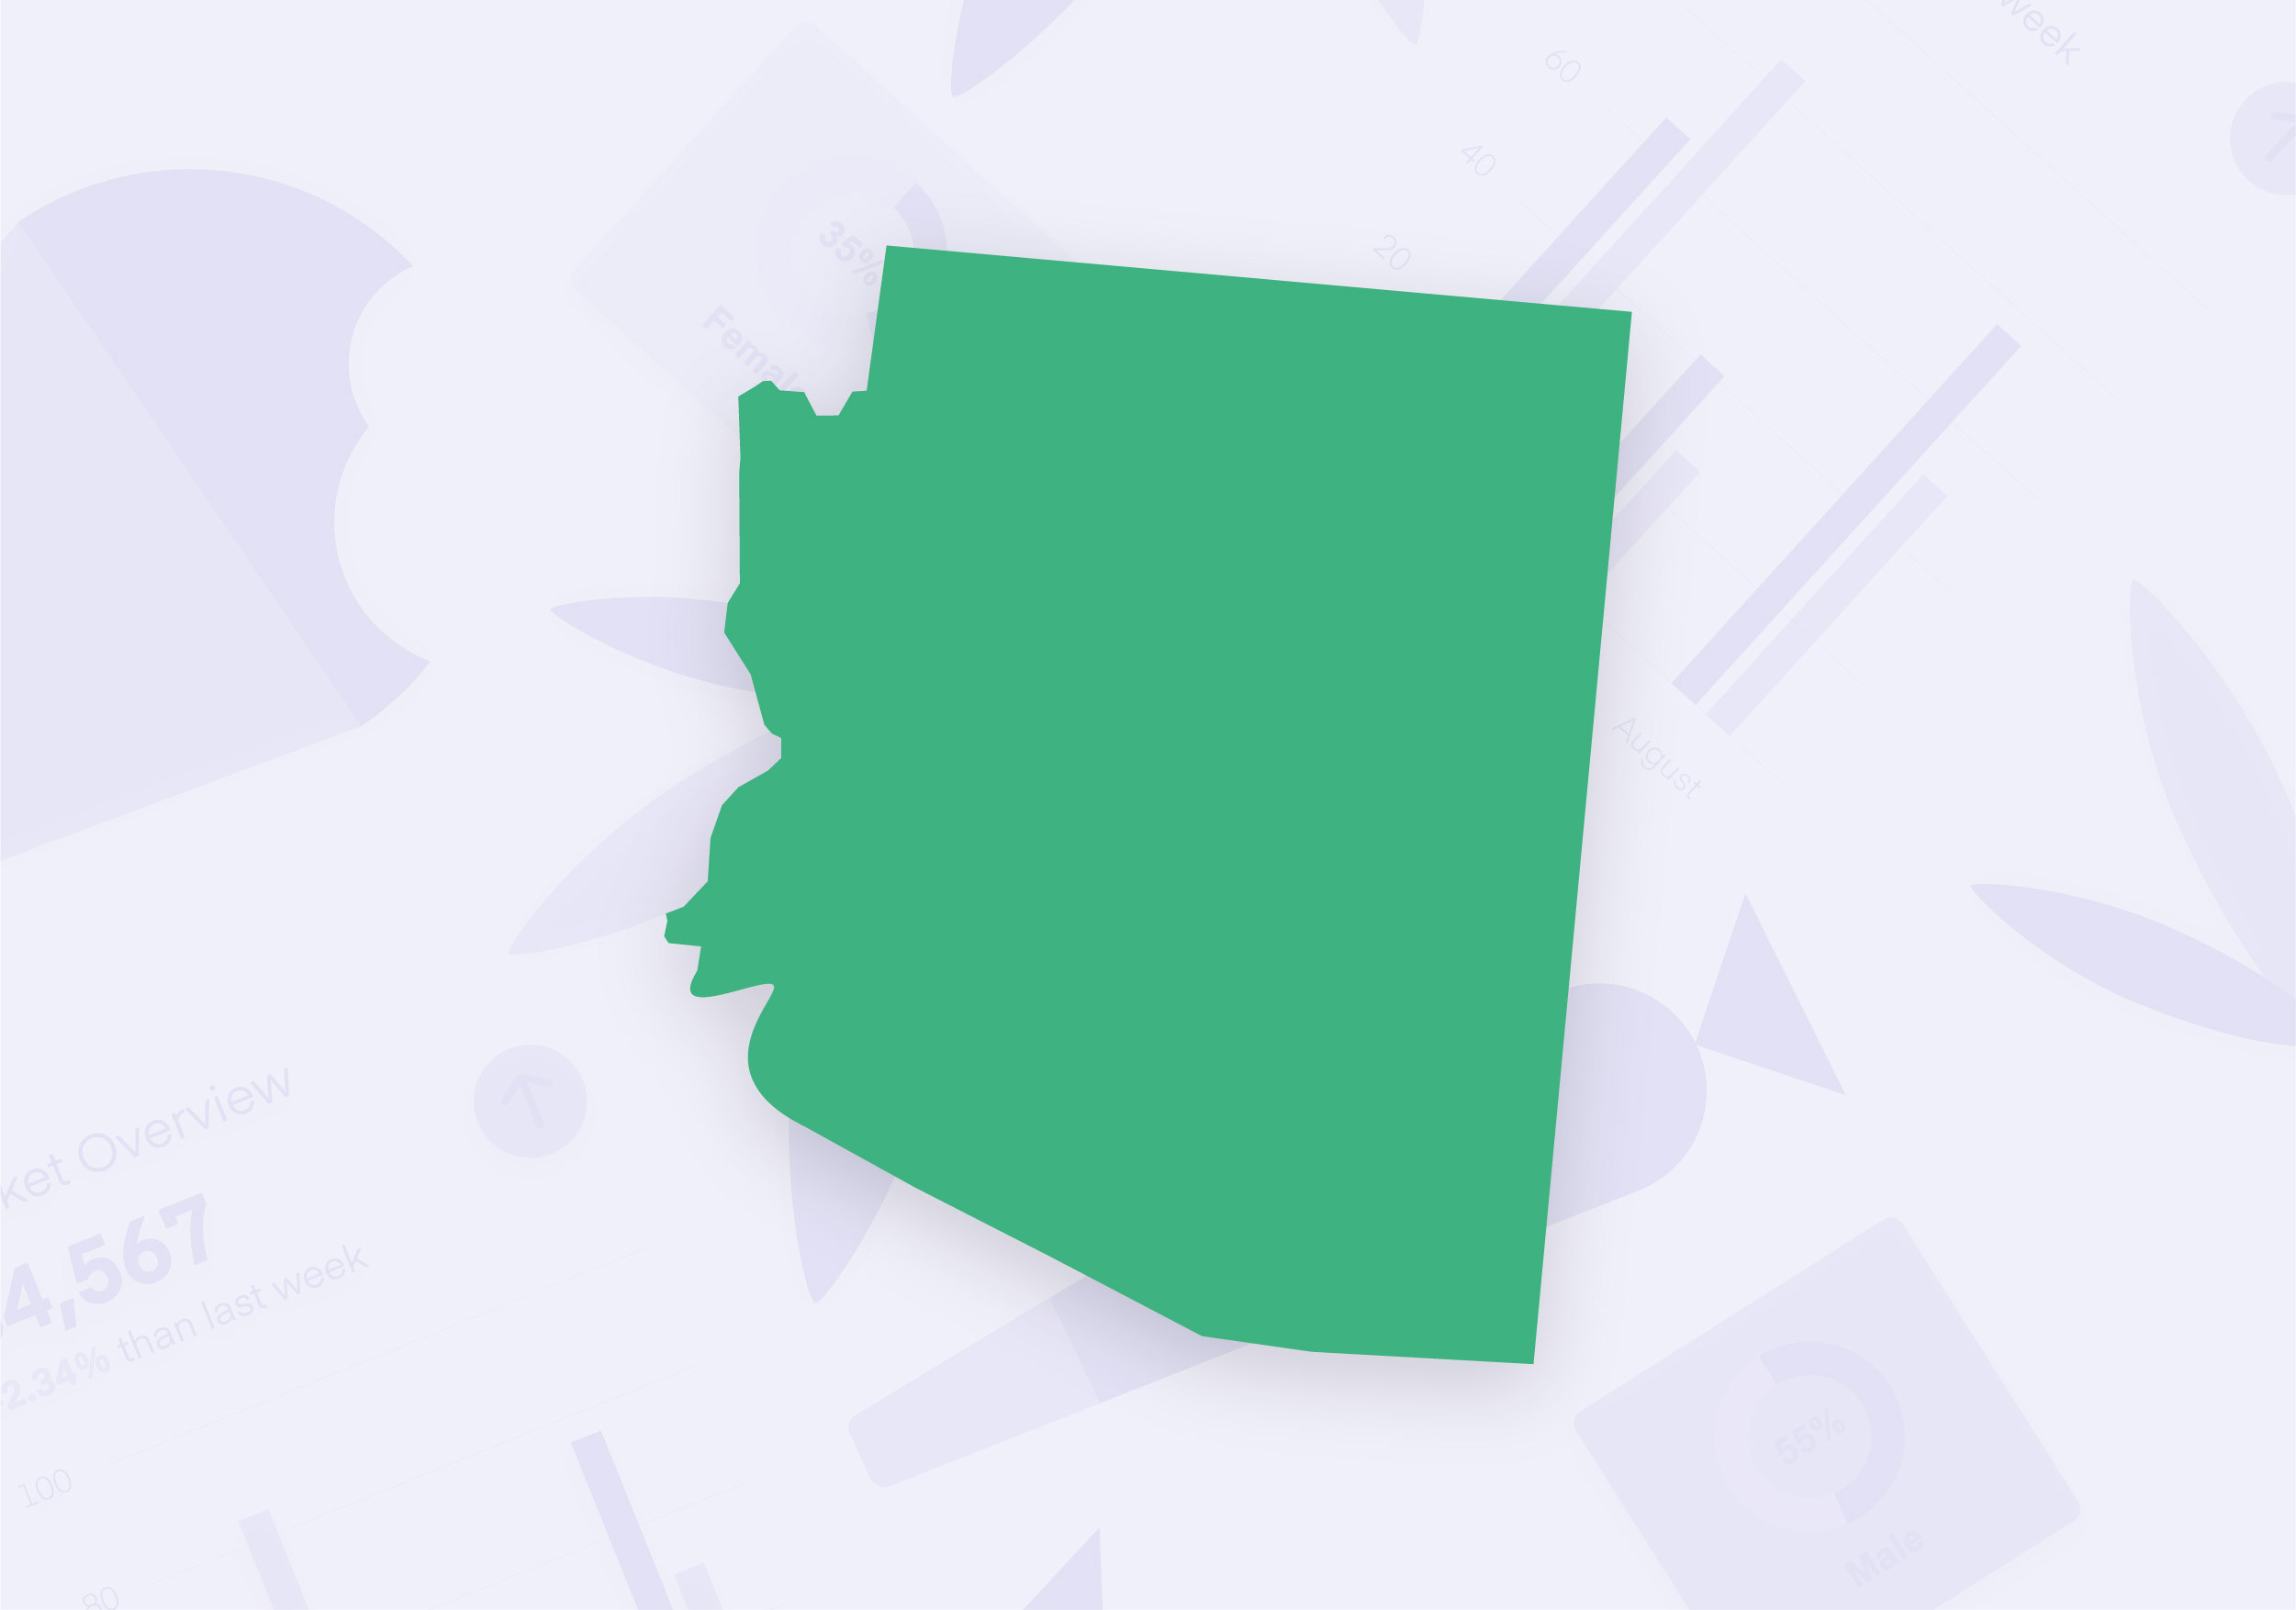 A high-level overview of the Arizona cannabis market